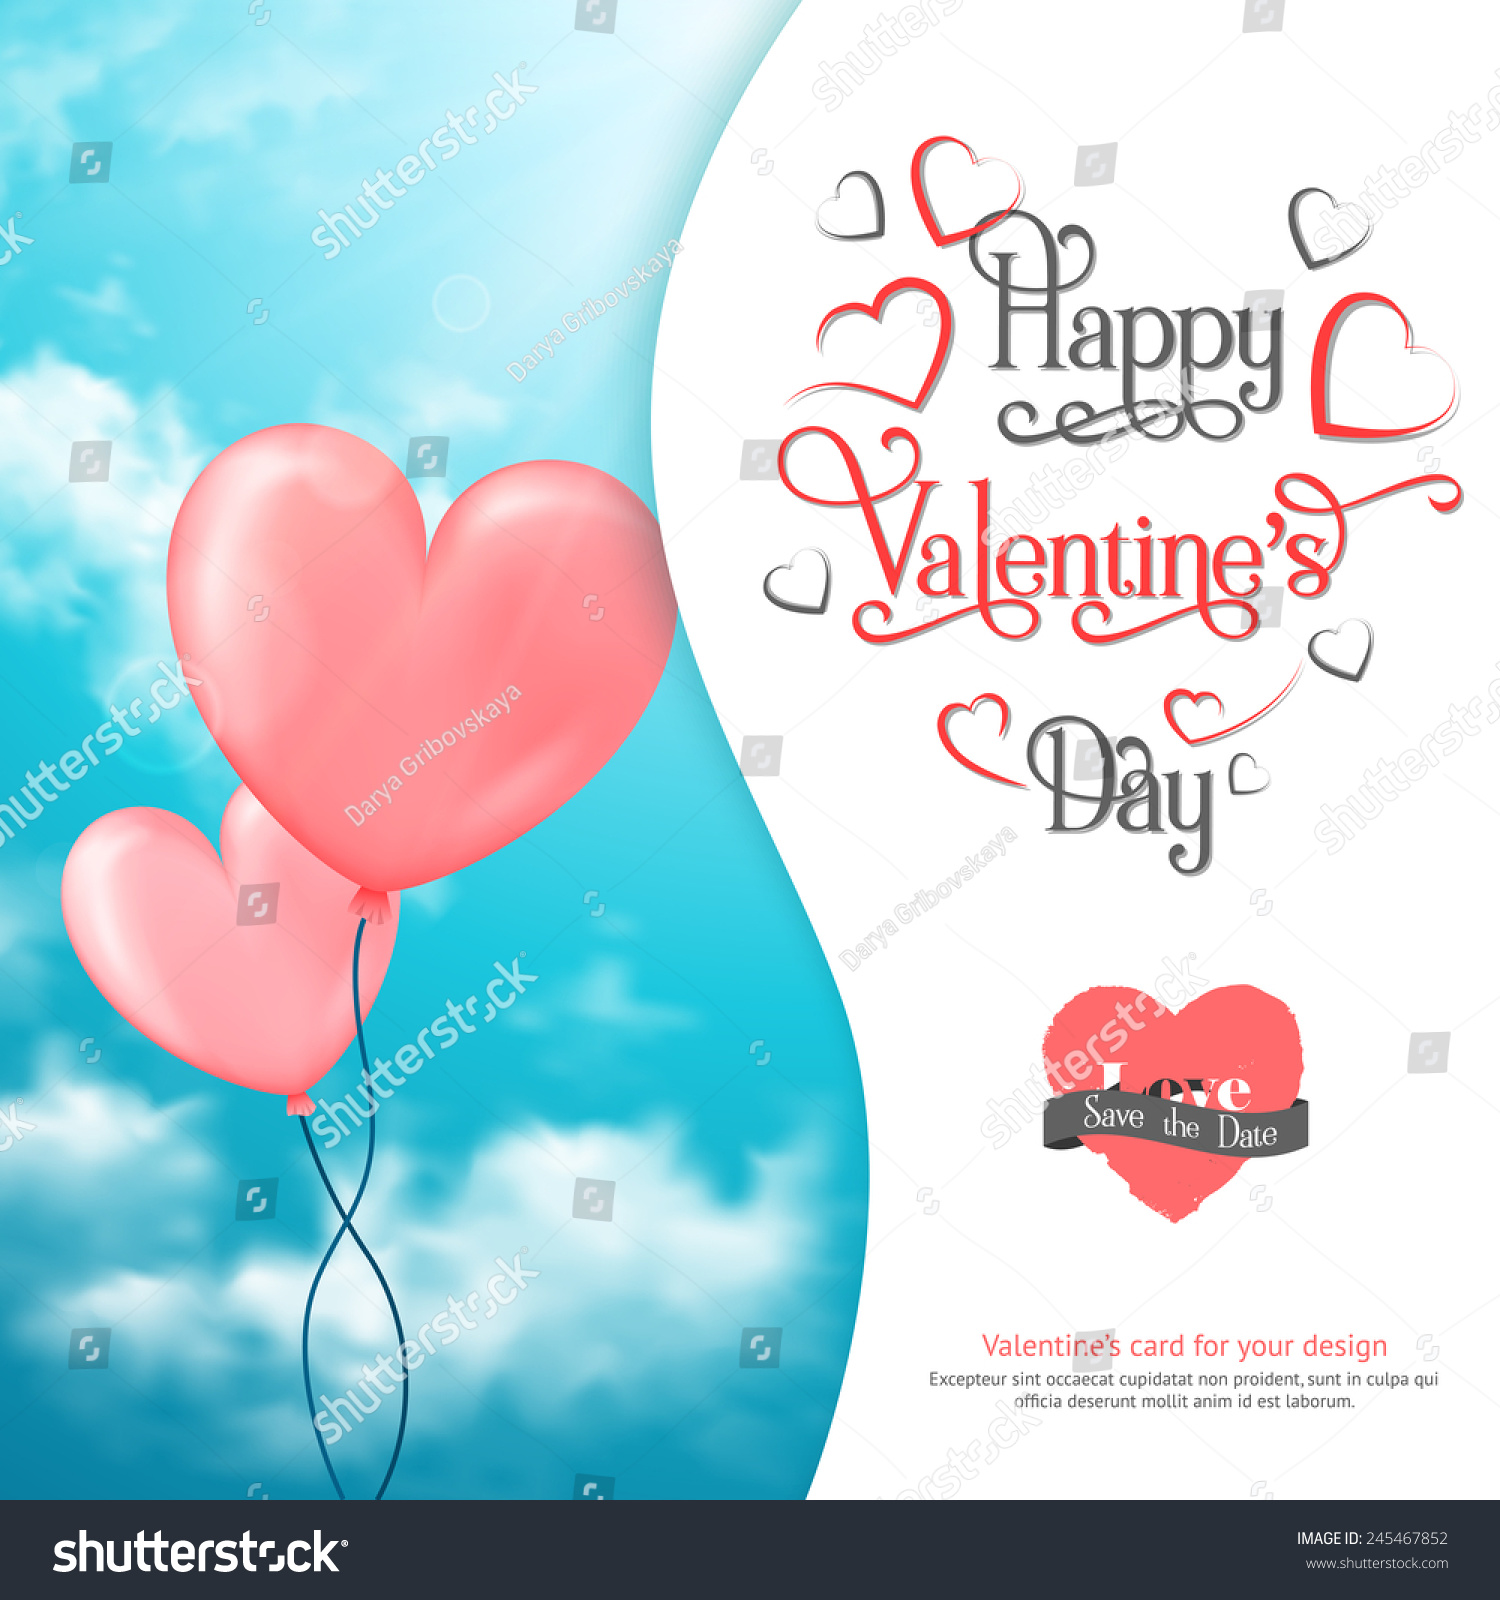 valentines card heartshaped balloons sky clouds stock vector